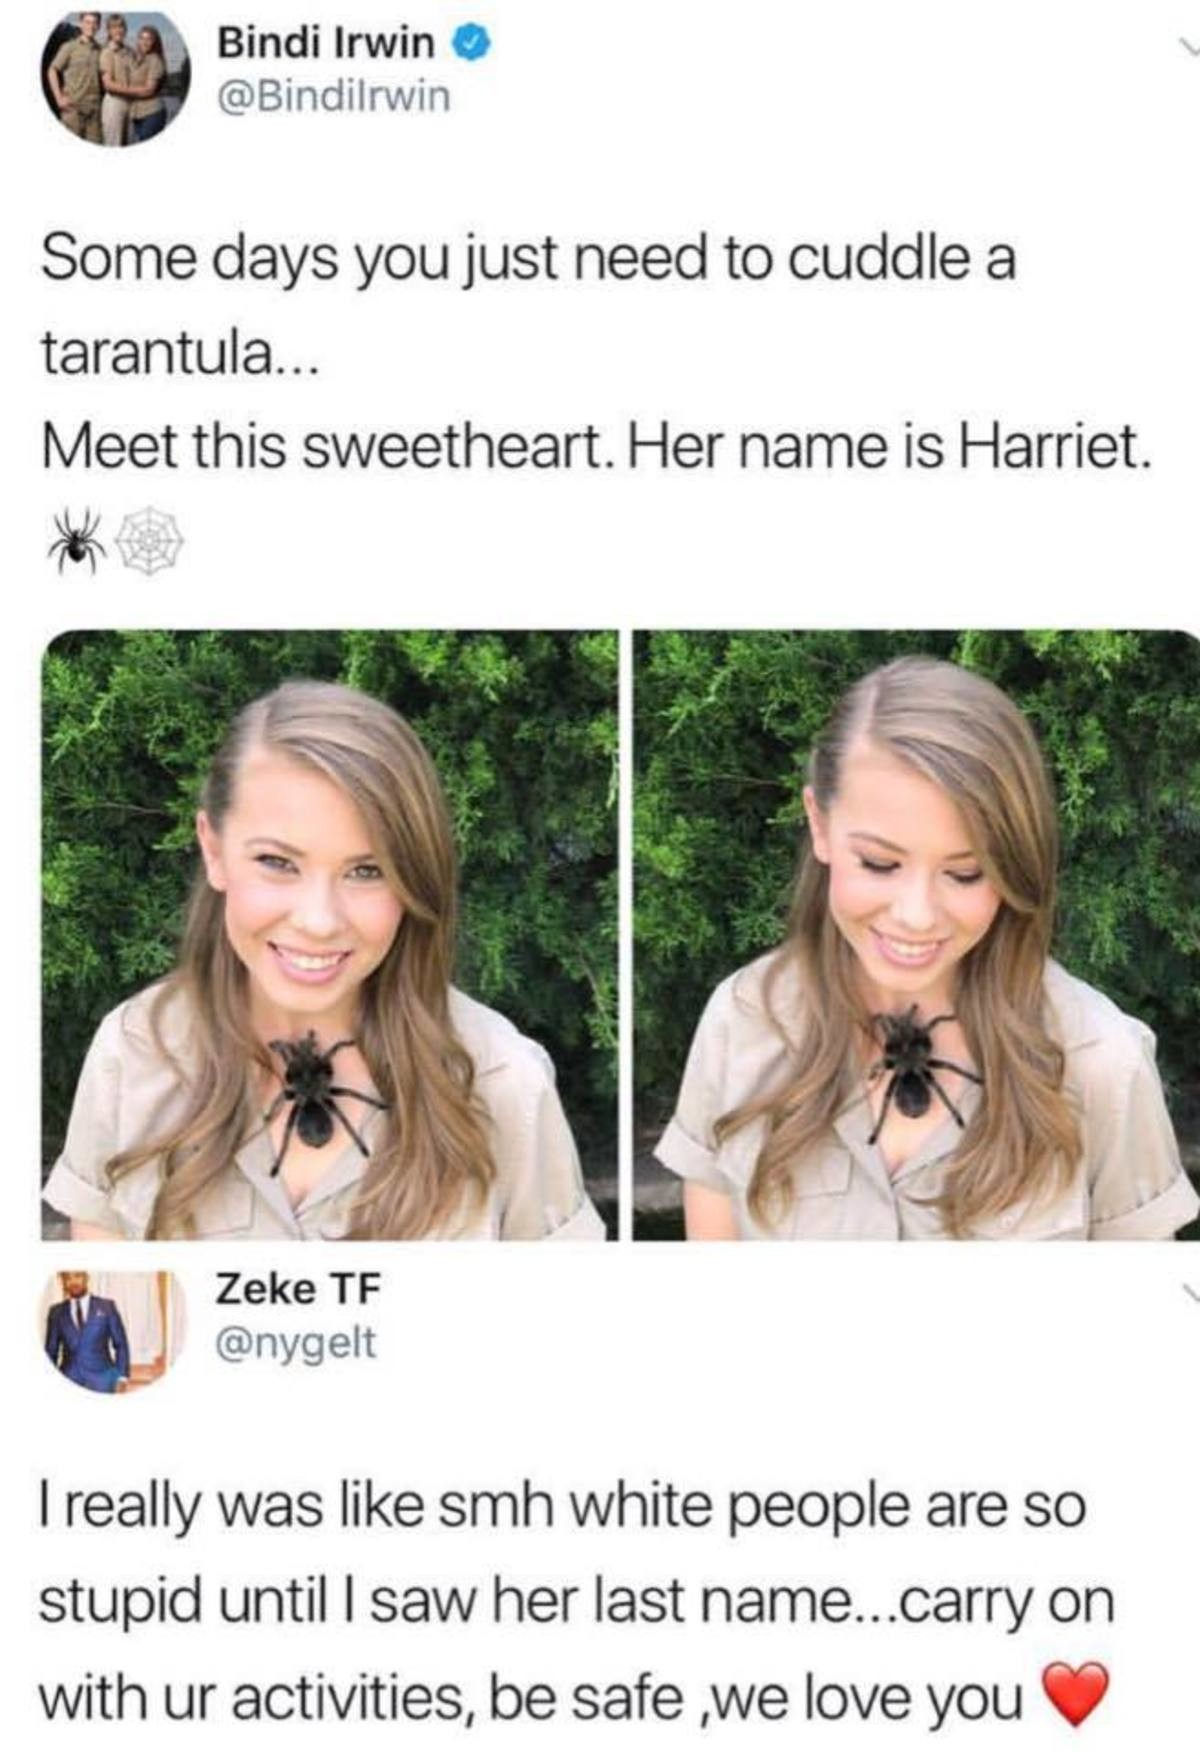 The Irwins have immunity. . Bindi Irwin Some days you just need to cuddle a tarantula... Meet this sweetheart. Her name is Harriet. I really was like smh white